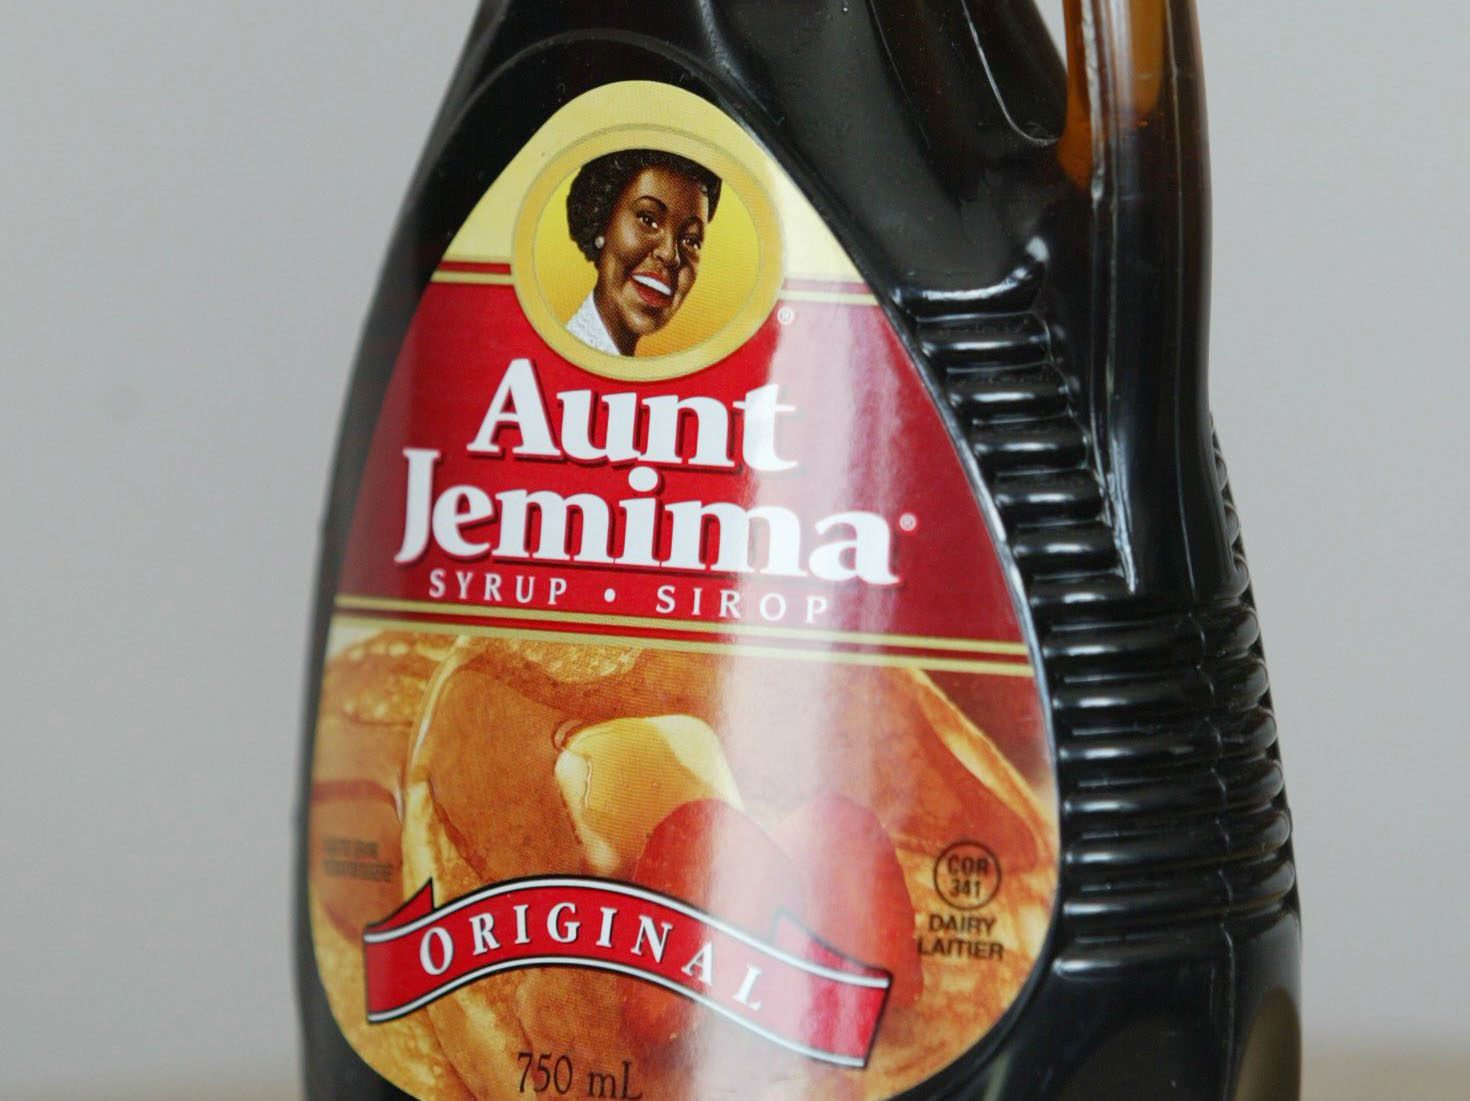 'based On A Racial Stereotype': Aunt Jemima Brand To Change Name, Logo photo